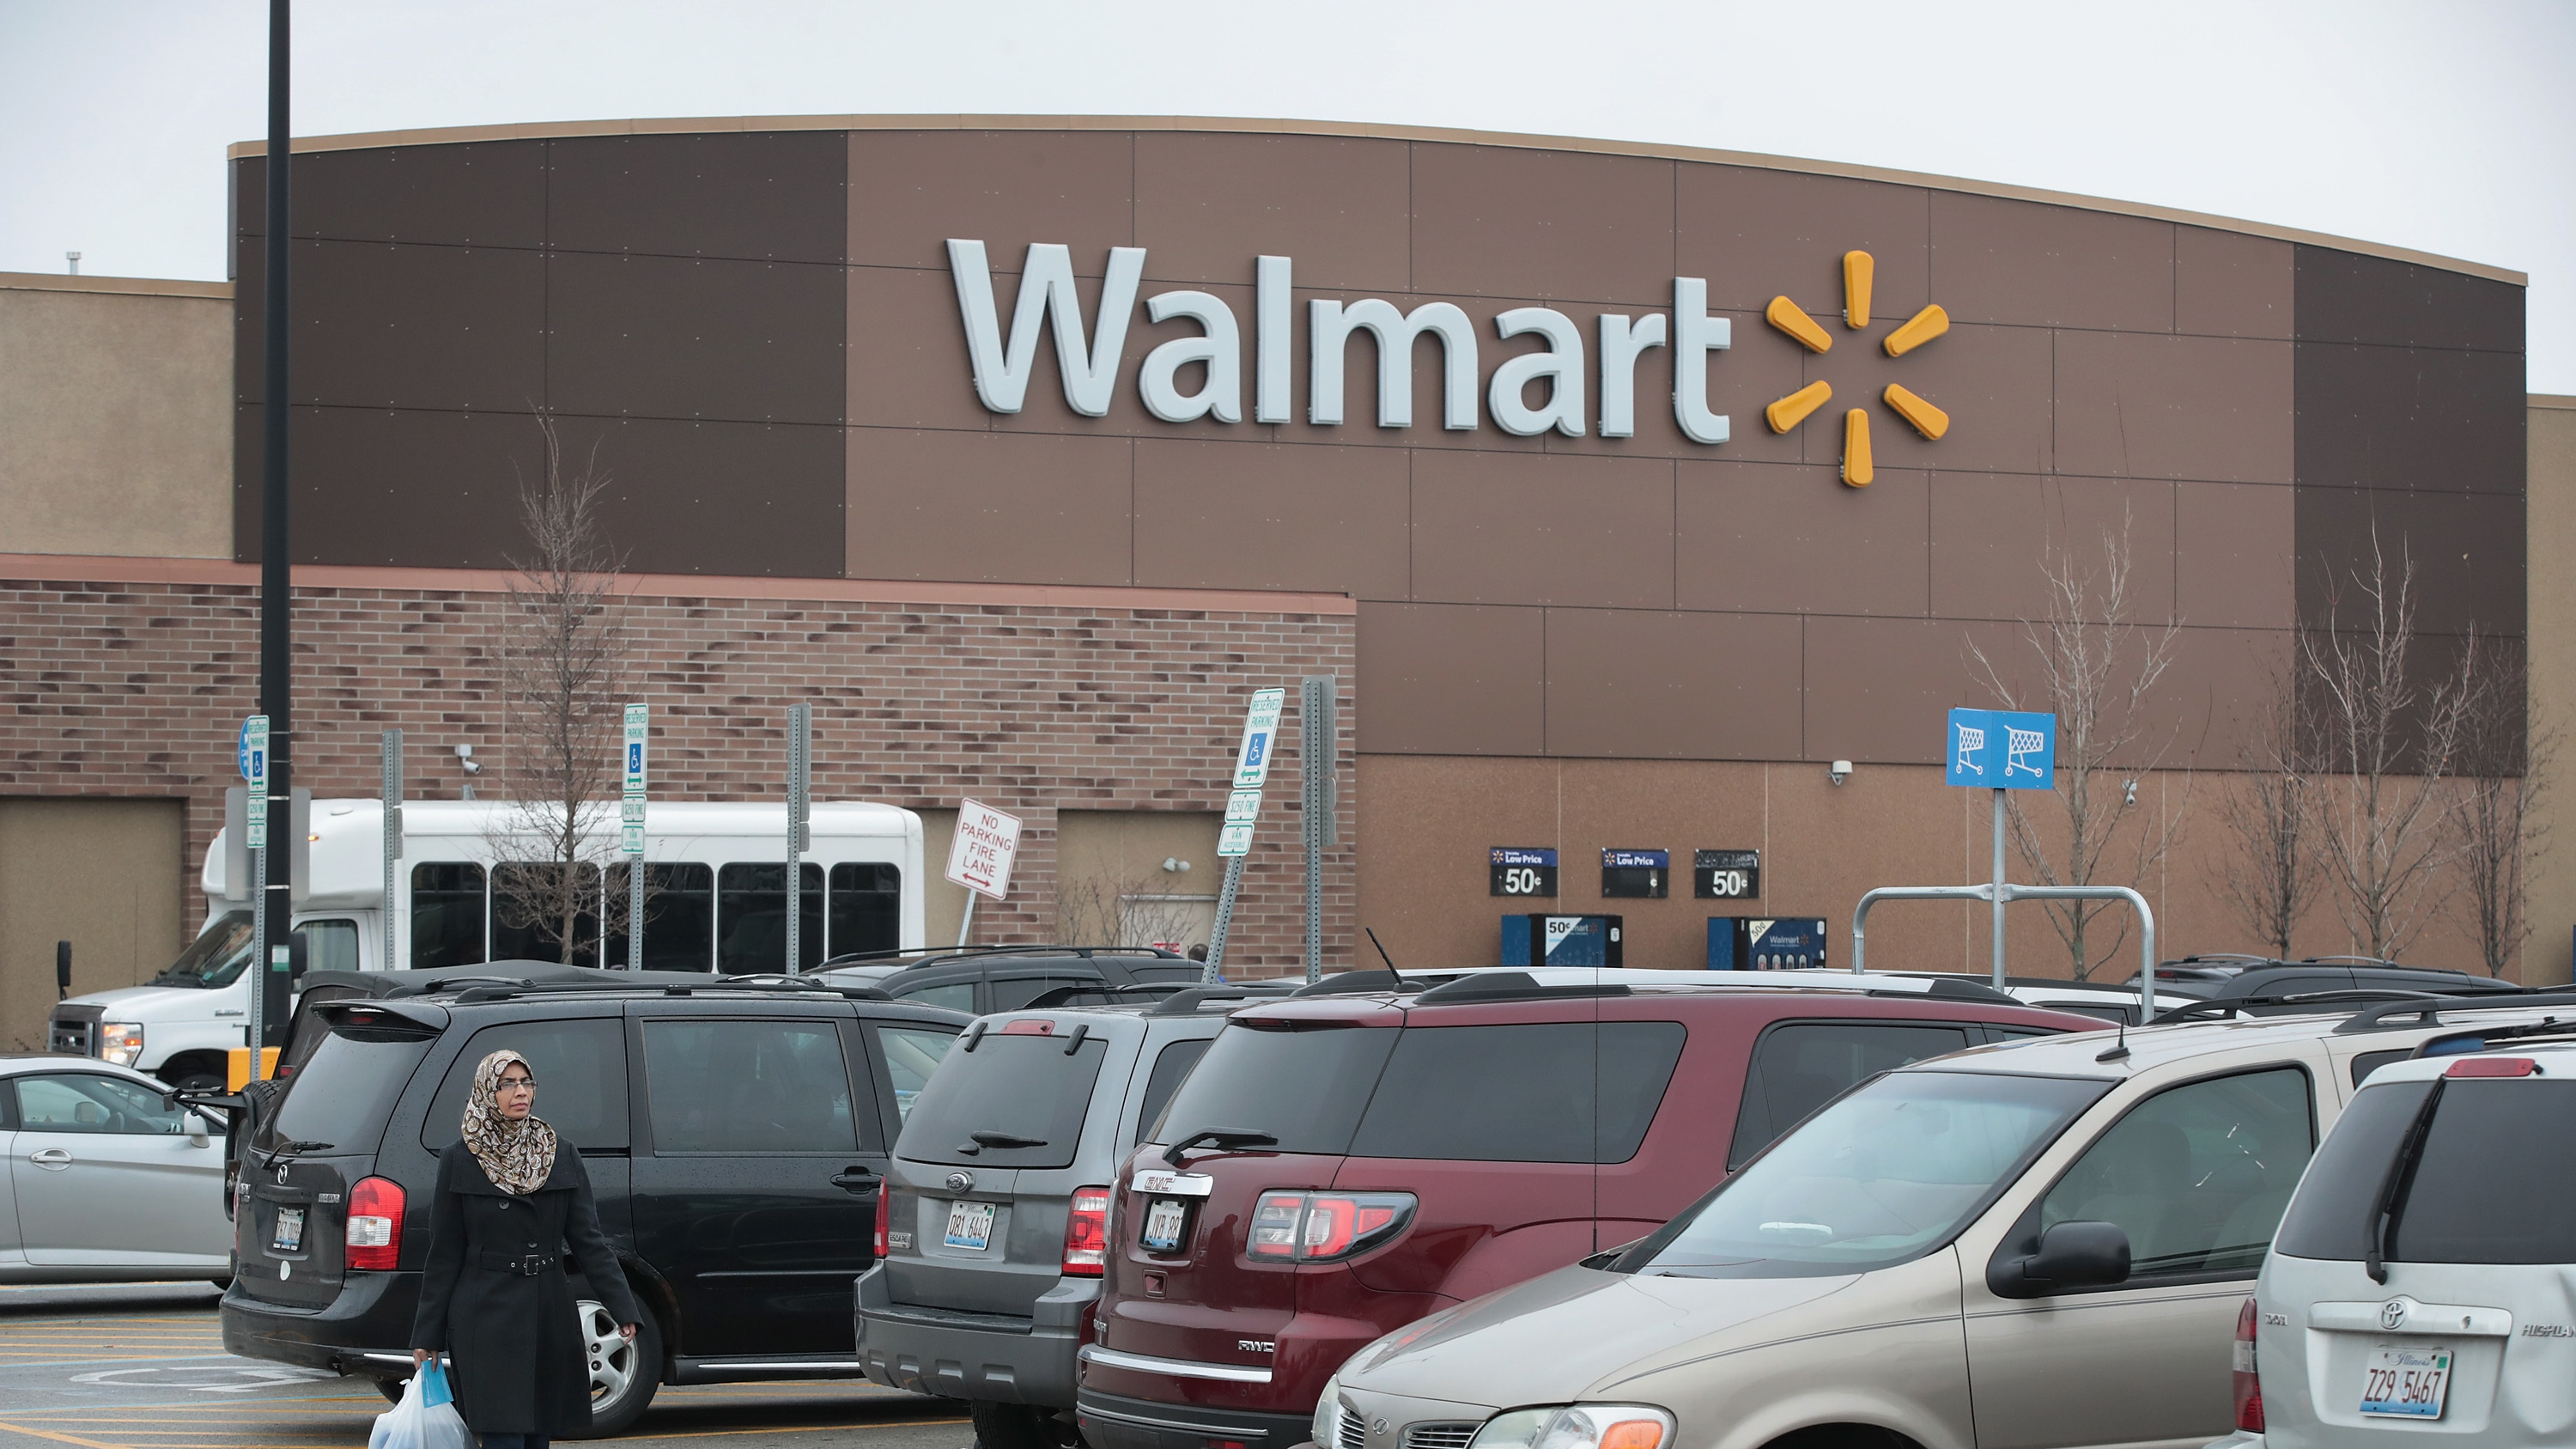 Walmart raises minimum wage, gives bonuses after tax cut